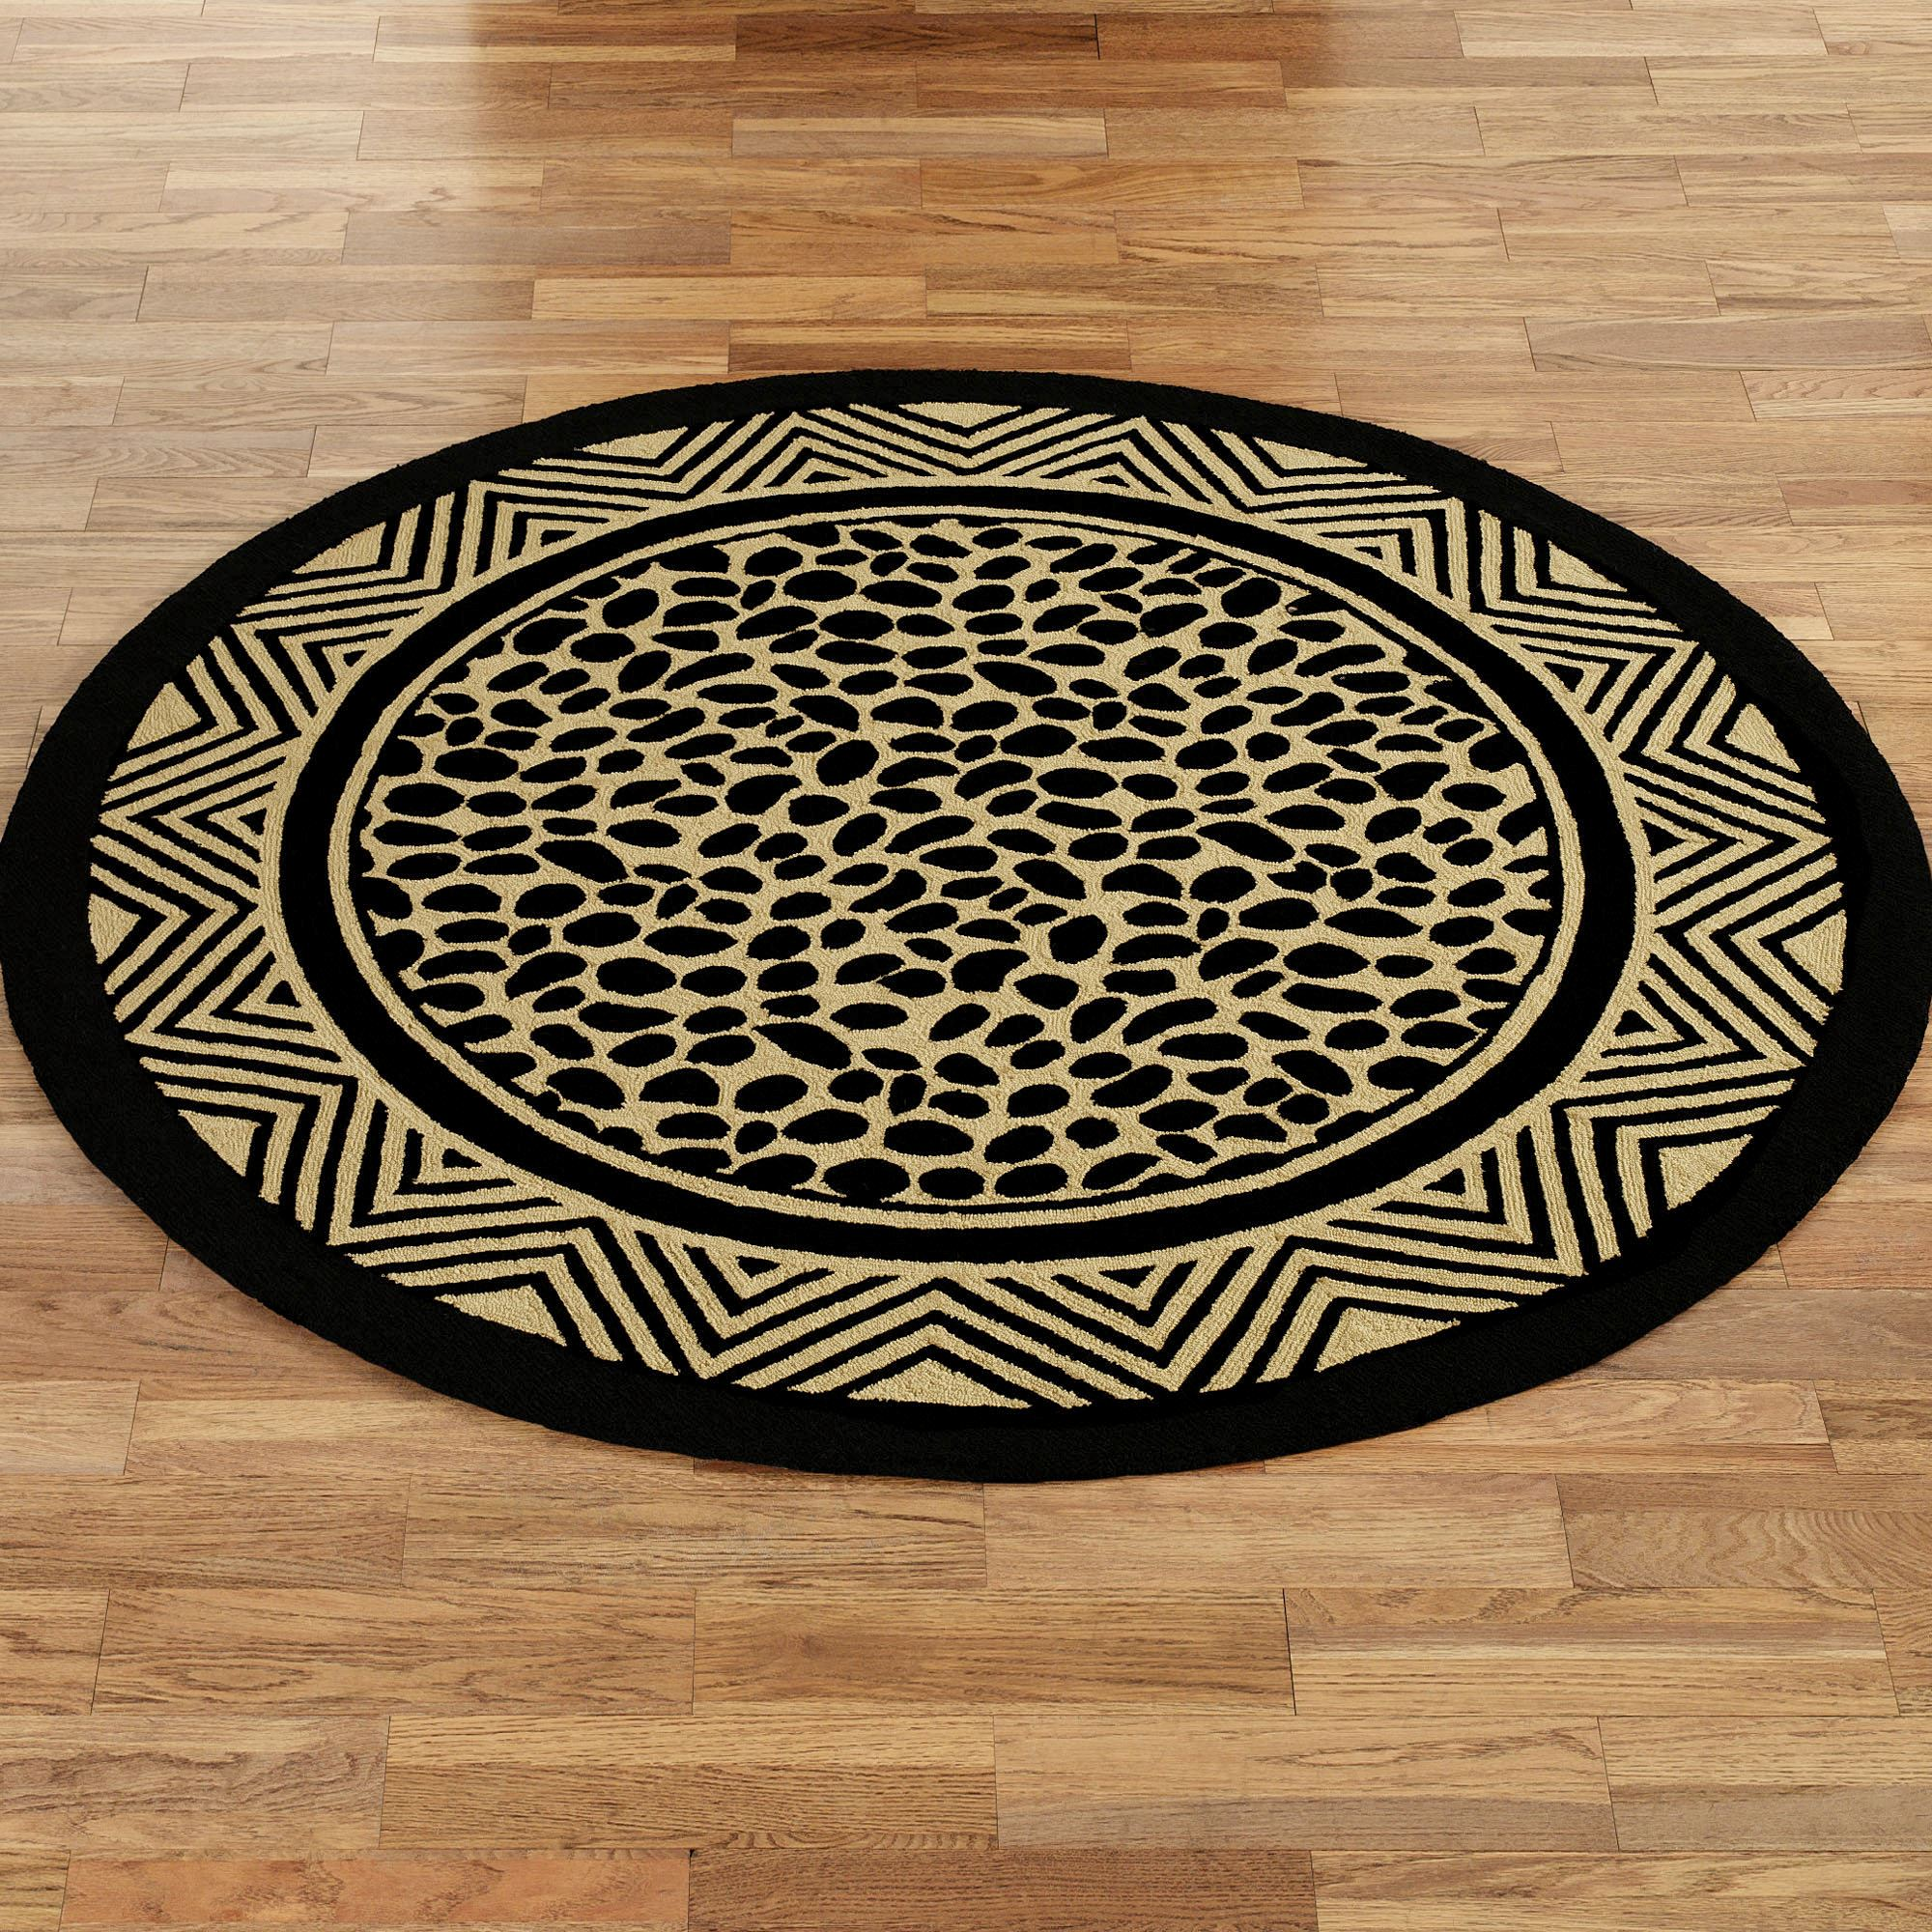 Animal Print Rugs Nz: Wild Leopard Print Hooked Round Rugs